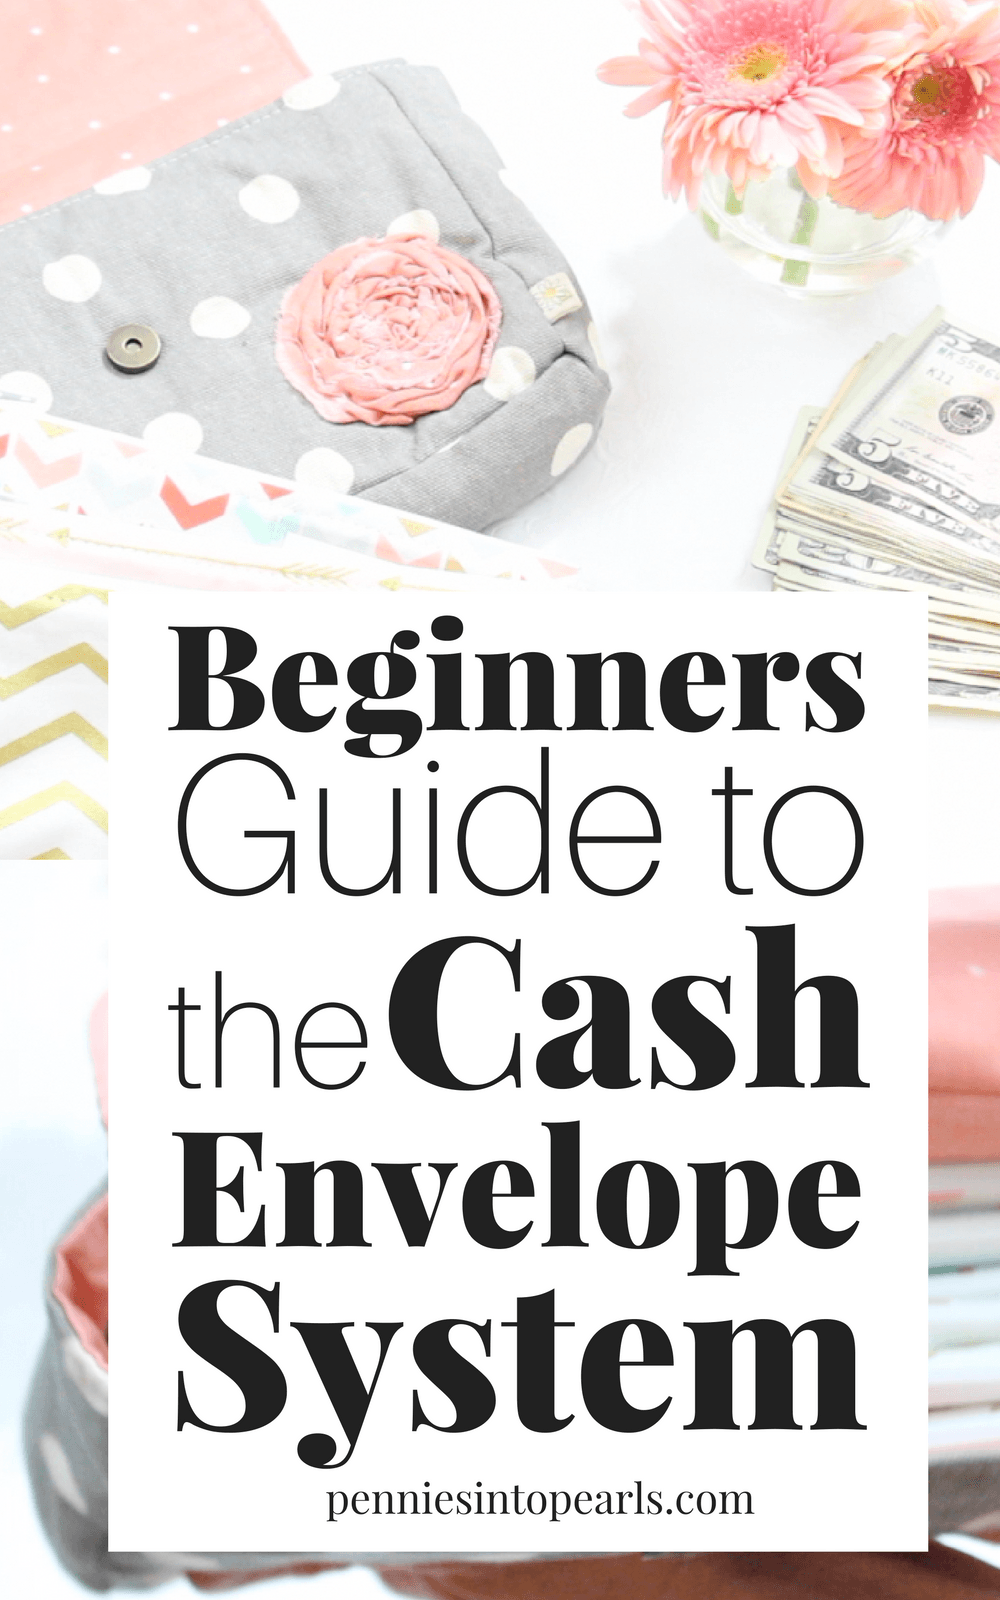 Start a budget today fast and easy without complicated paperwork. Use this  simple guide to the cash envelope system and find your financial freedom  today!